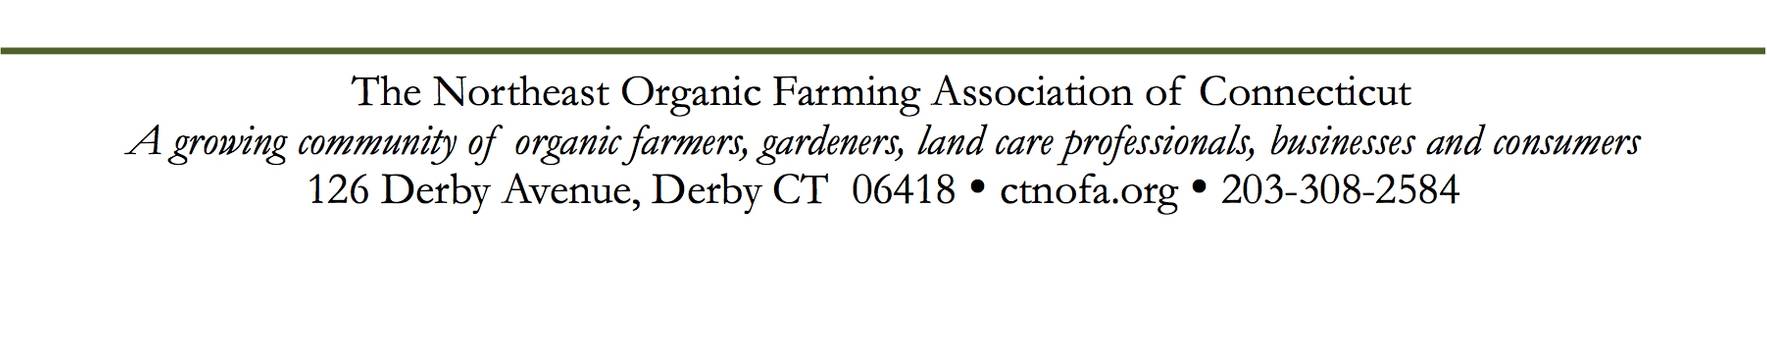 NEWLY ACCREDITED PROFESSIONAL PRACTICES ORGANIC LAND CARE IN BERLIN, CONNECTICUT